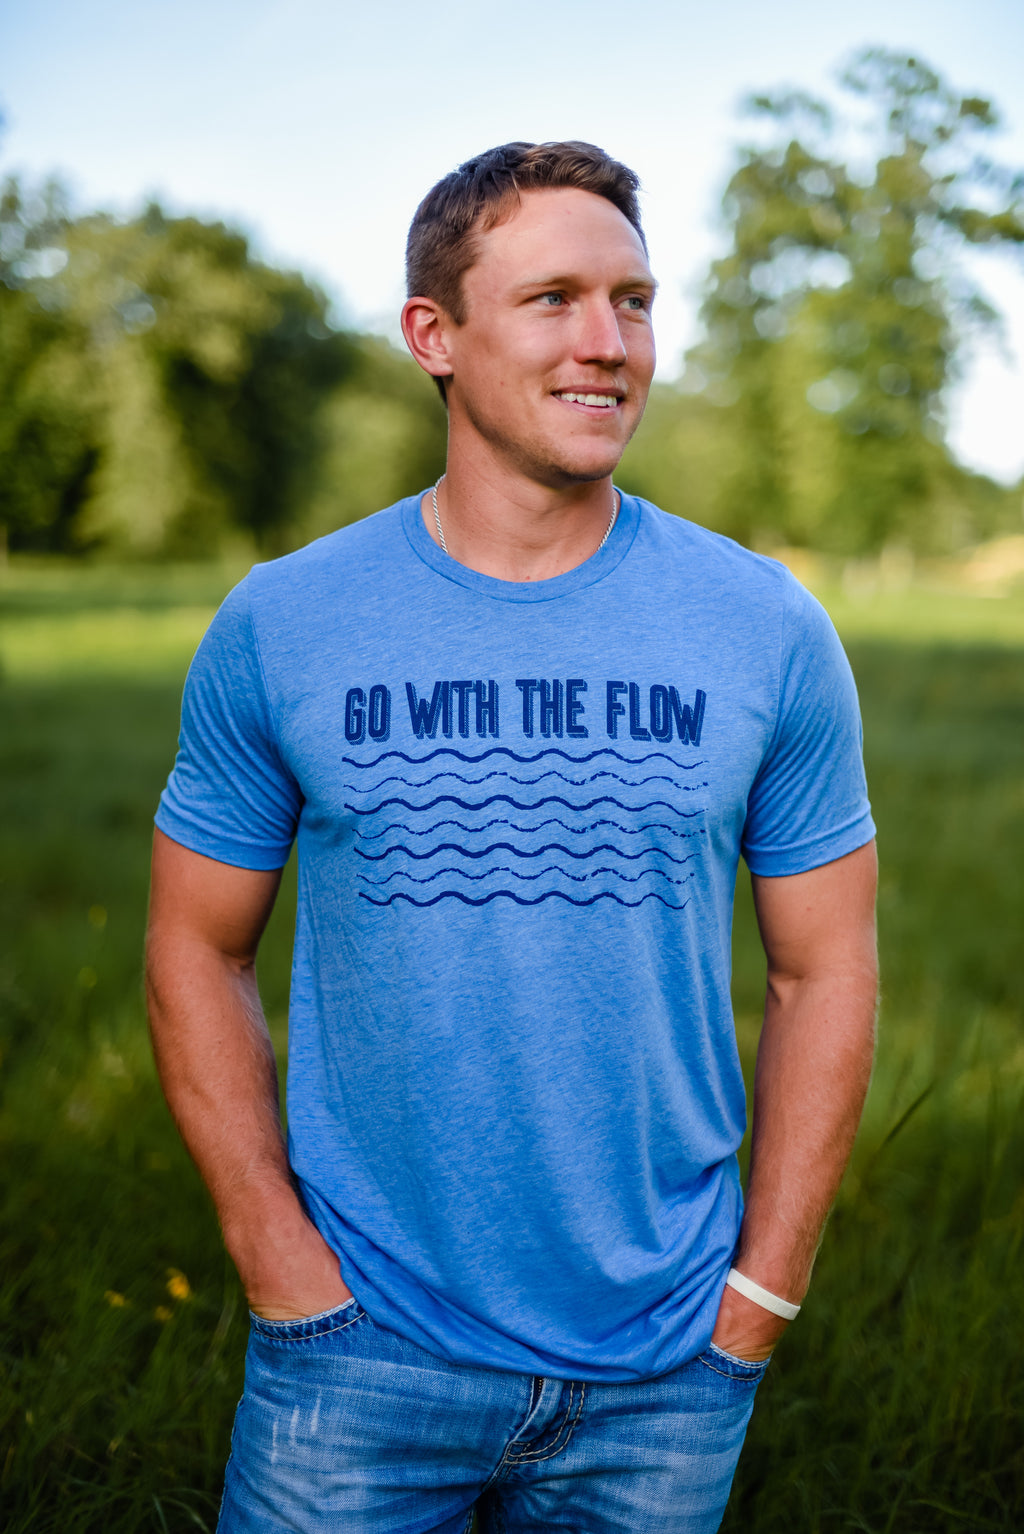 Go With The Flow - Sweet Tees + happy things